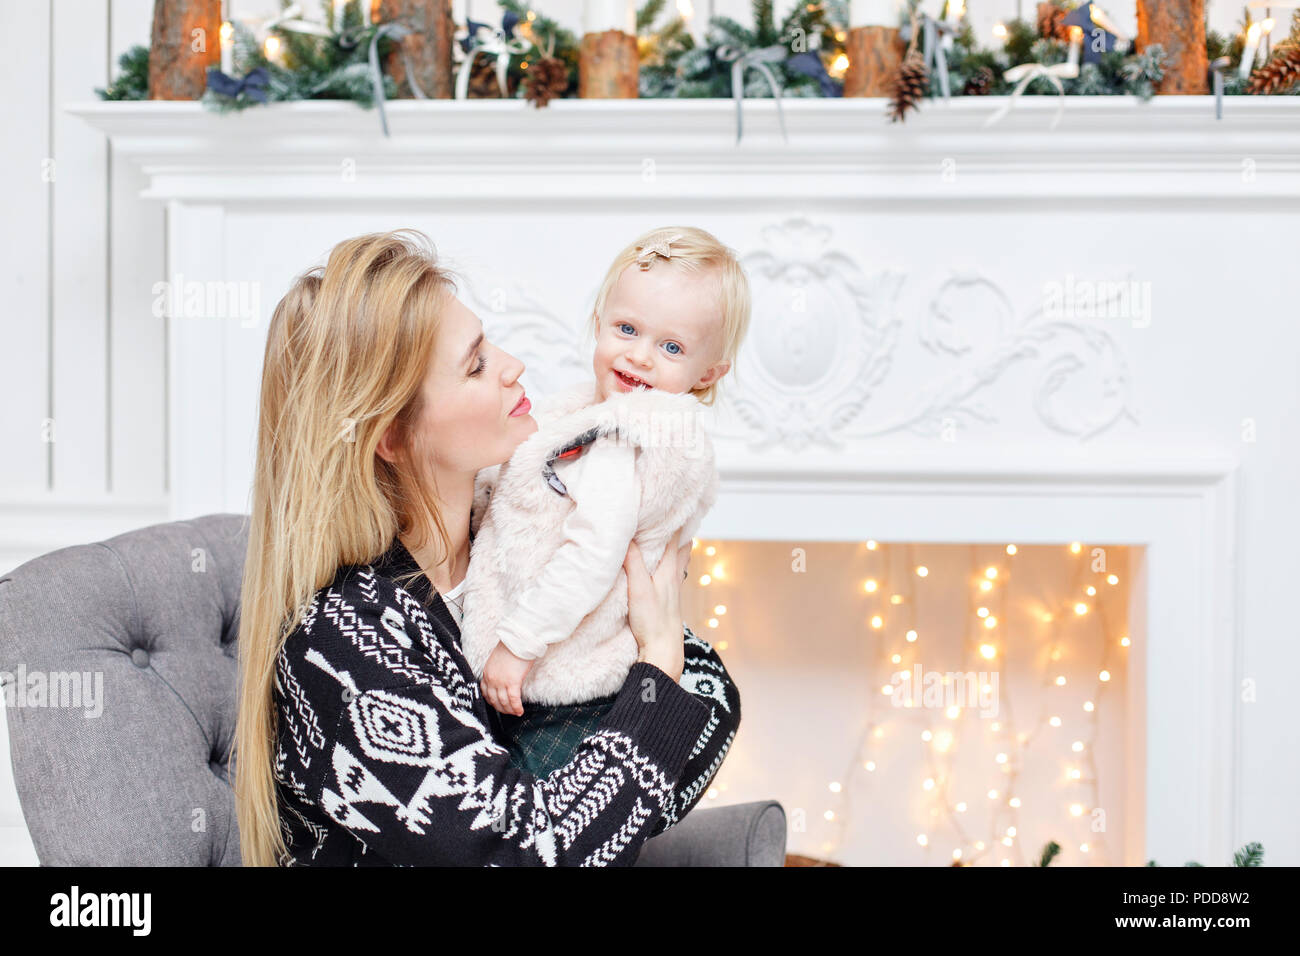 16d79cd3 Cheerful mom embraces her cute baby daughter . Parent and little child  having fun near Christmas tree indoors. Loving family Merry Christmas and  Happy New ...